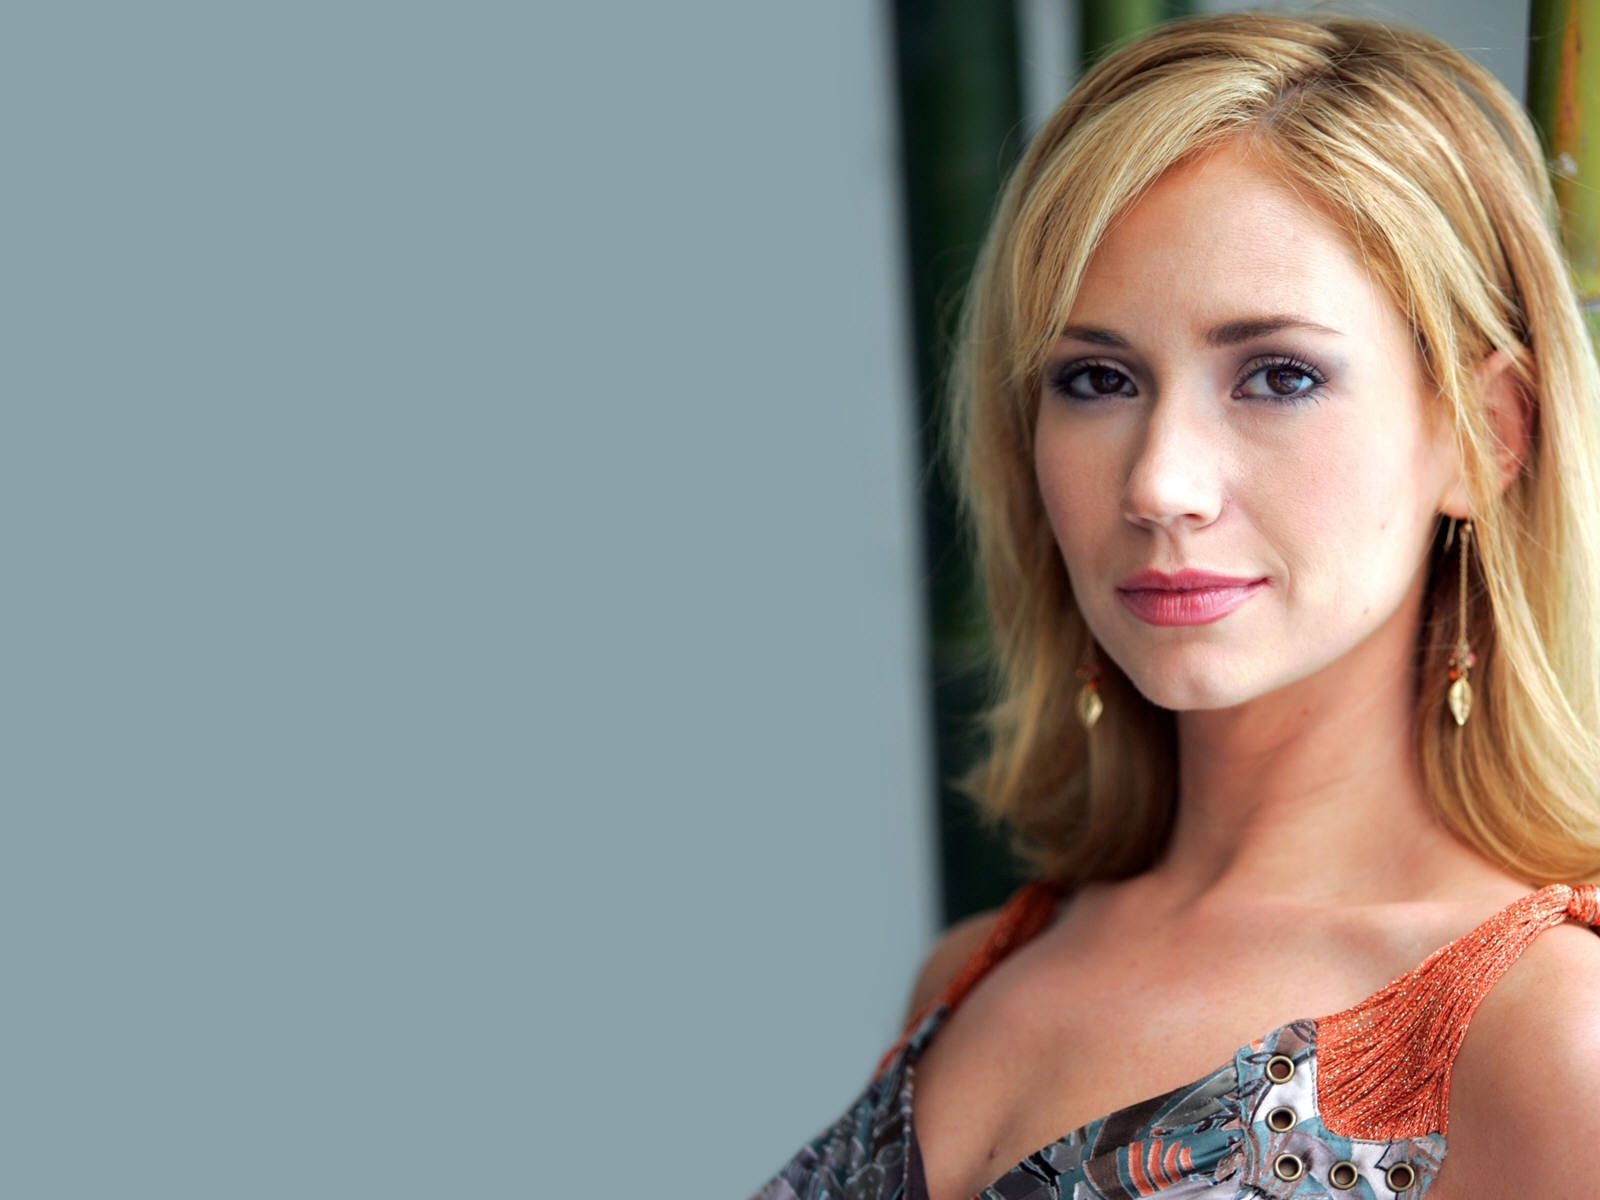 Ashley Jones #008 - 1600x1200 Wallpapers Pictures Photos Images